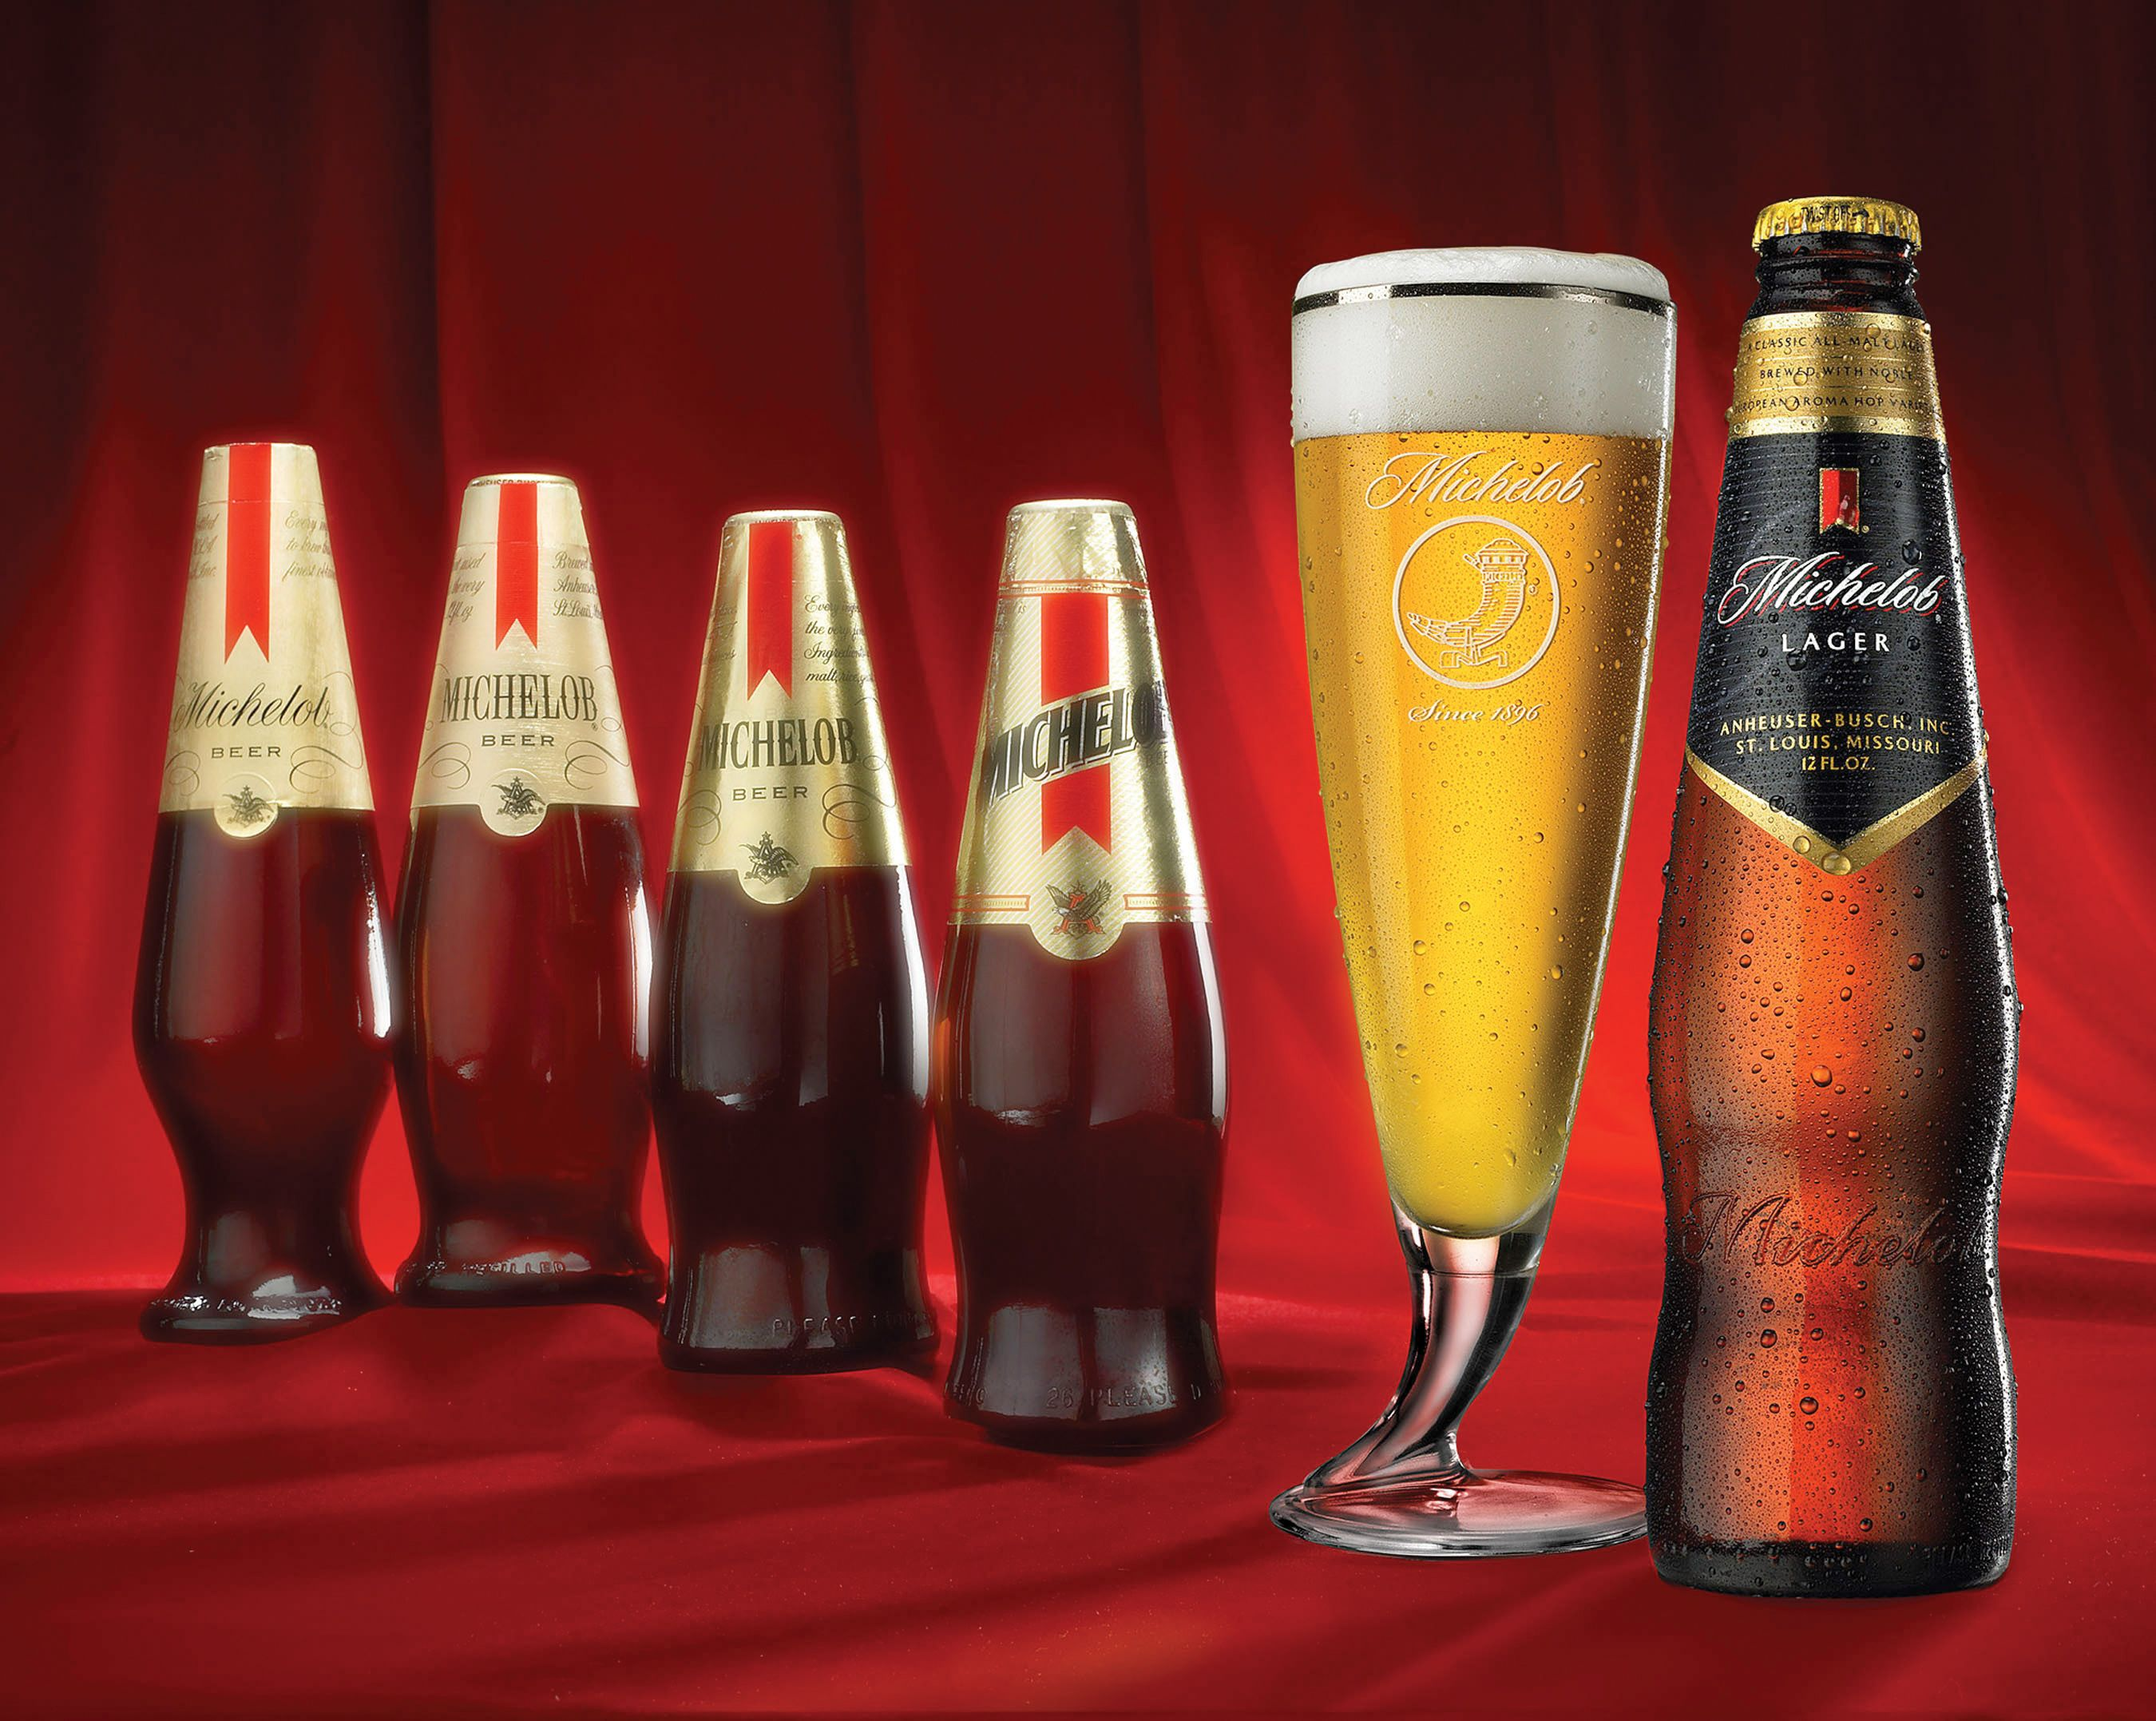 Anheuser busch beer school : Brazilian laser hair removal cost ideal